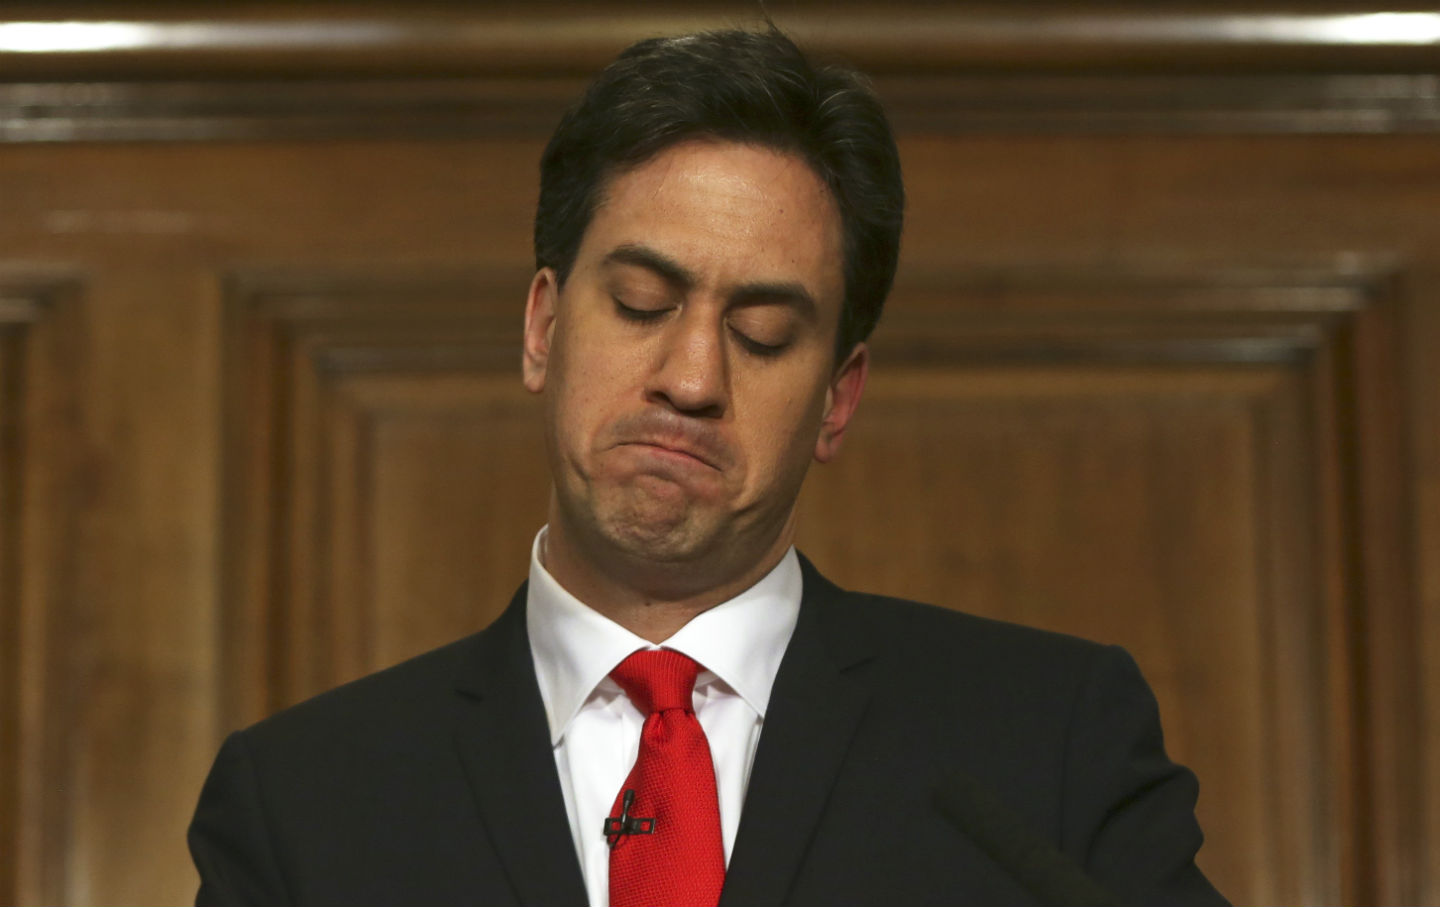 Ed-Miliband-announces-his-resignation